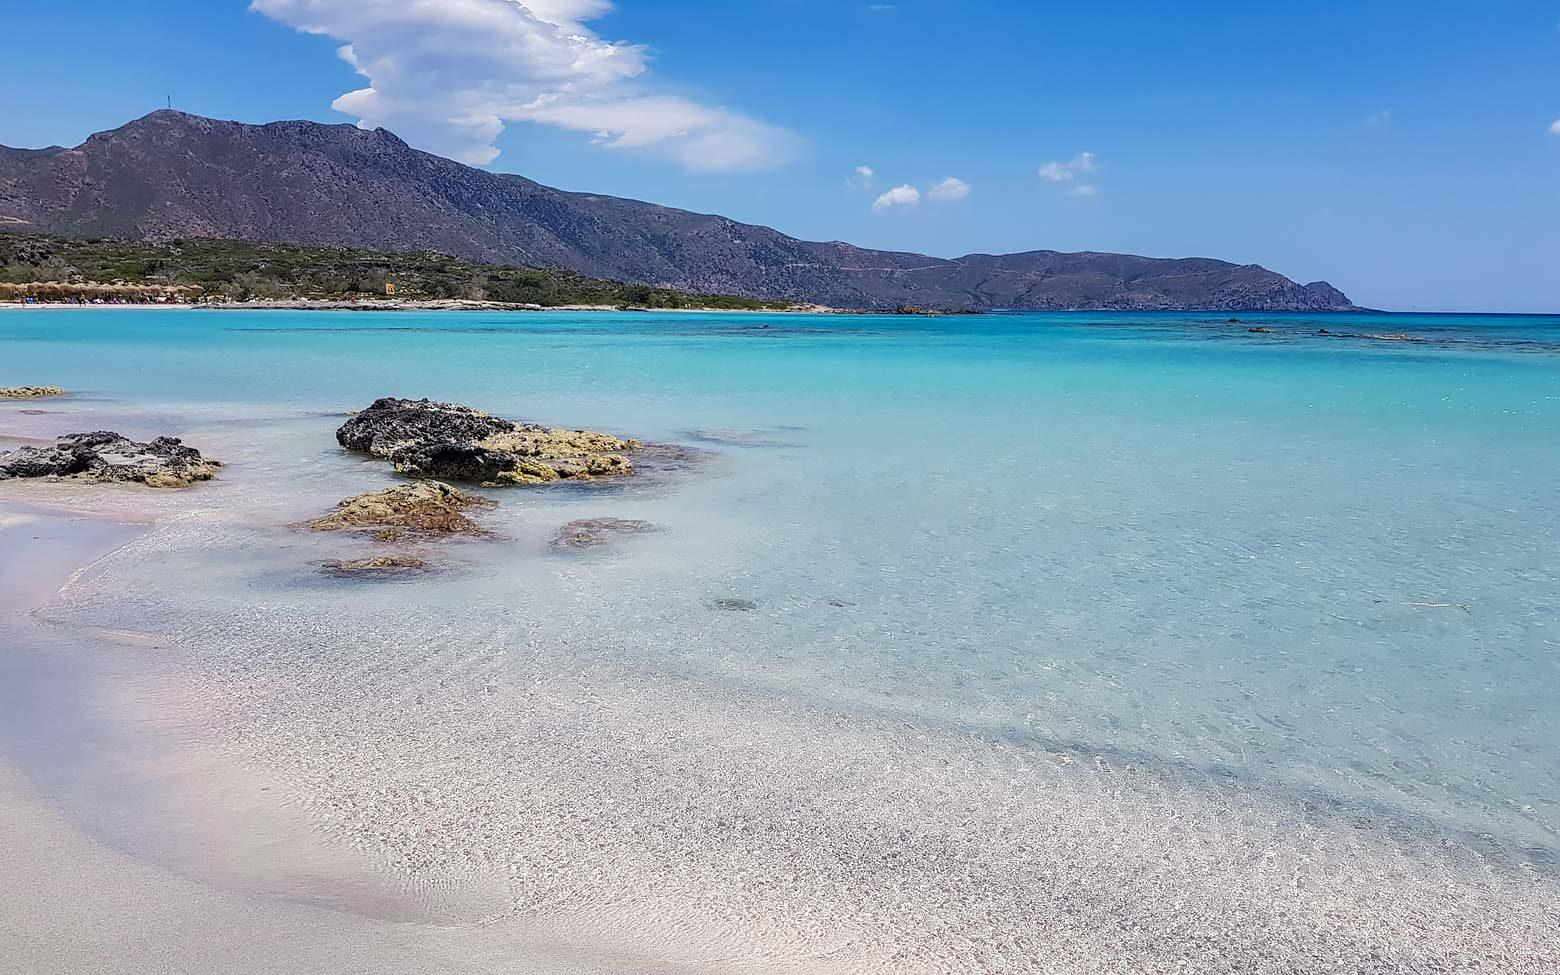 Photo of Crete - Elafonisi beach sands